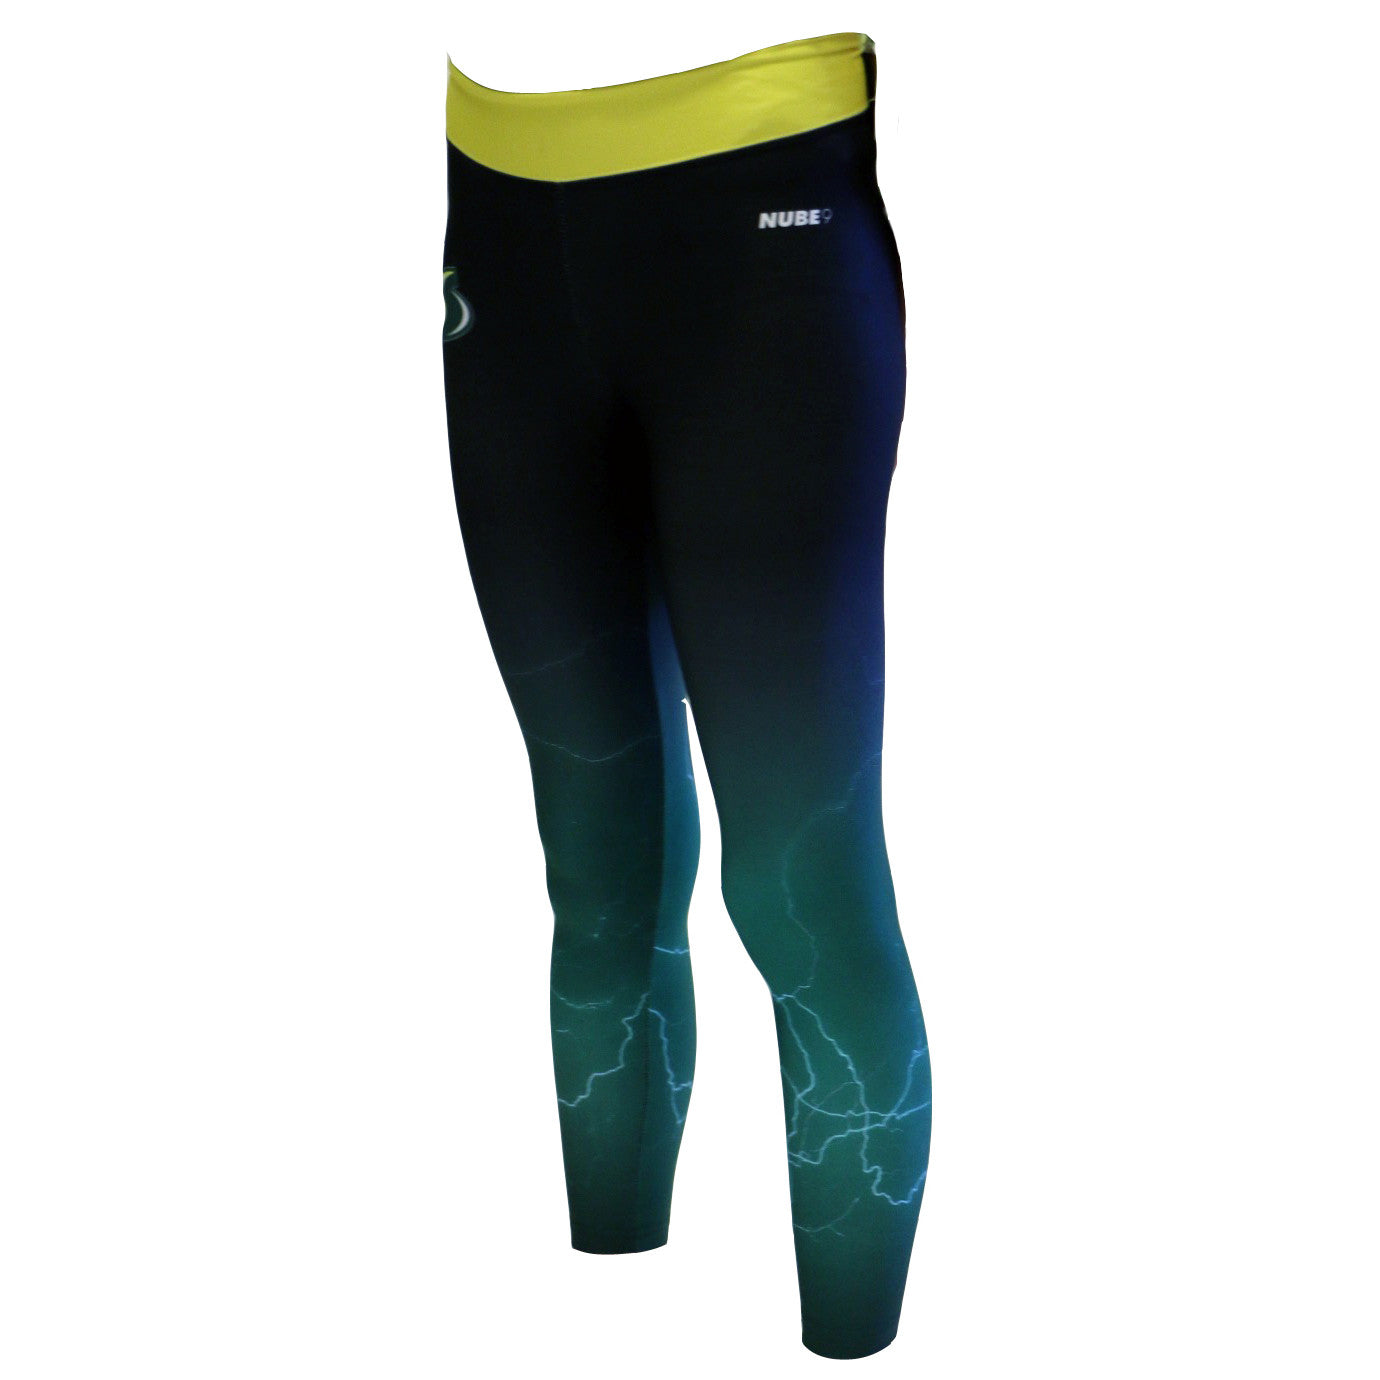 Amped Leggings